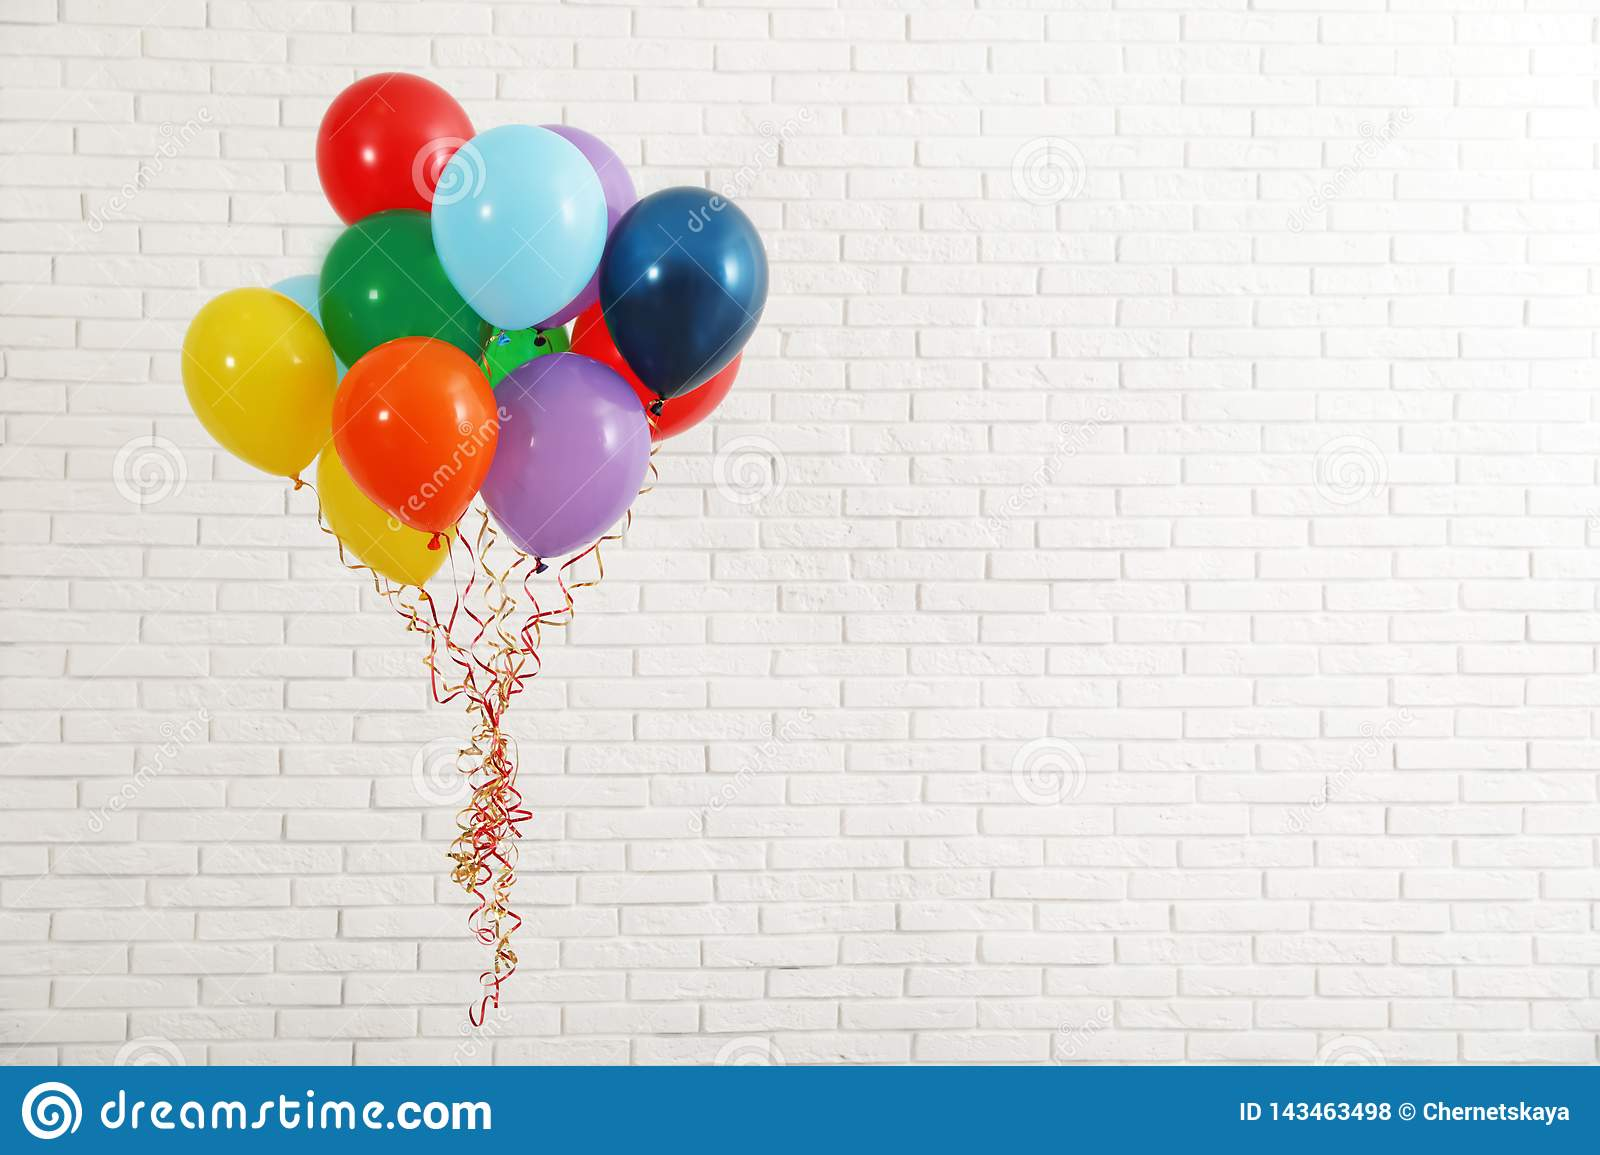 Bunch of bright balloons near wall, space for text. Celebration time